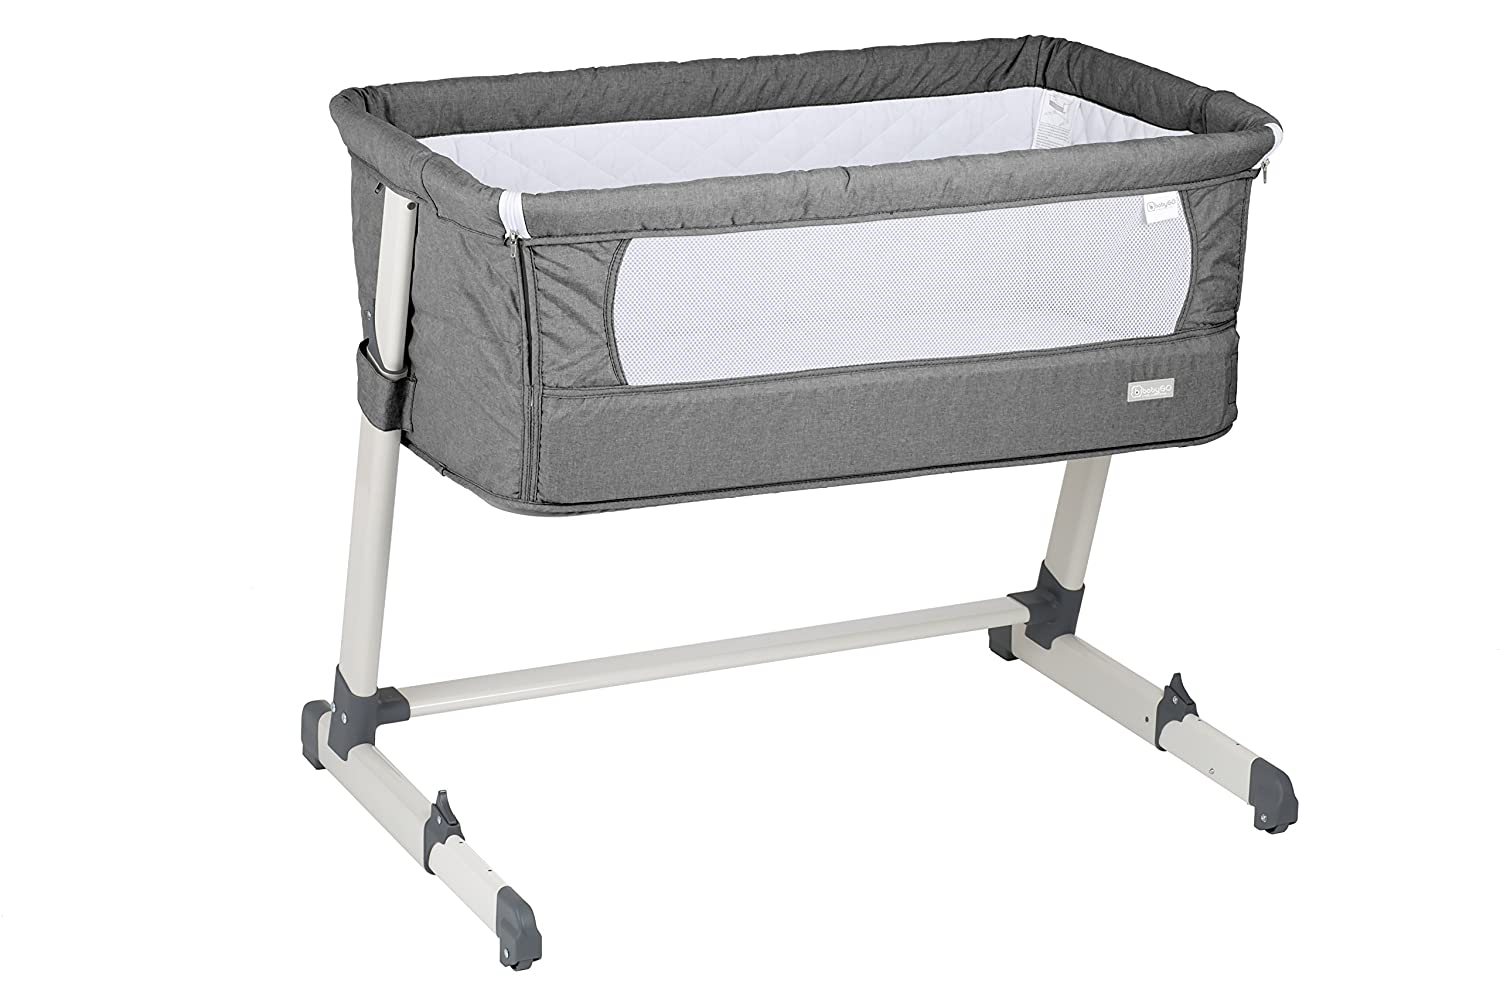 babygo 4601 Lettino-Culla Together Lettino incl Materasso e Cuscino, Grigio BabyGo Baby Products GmbH